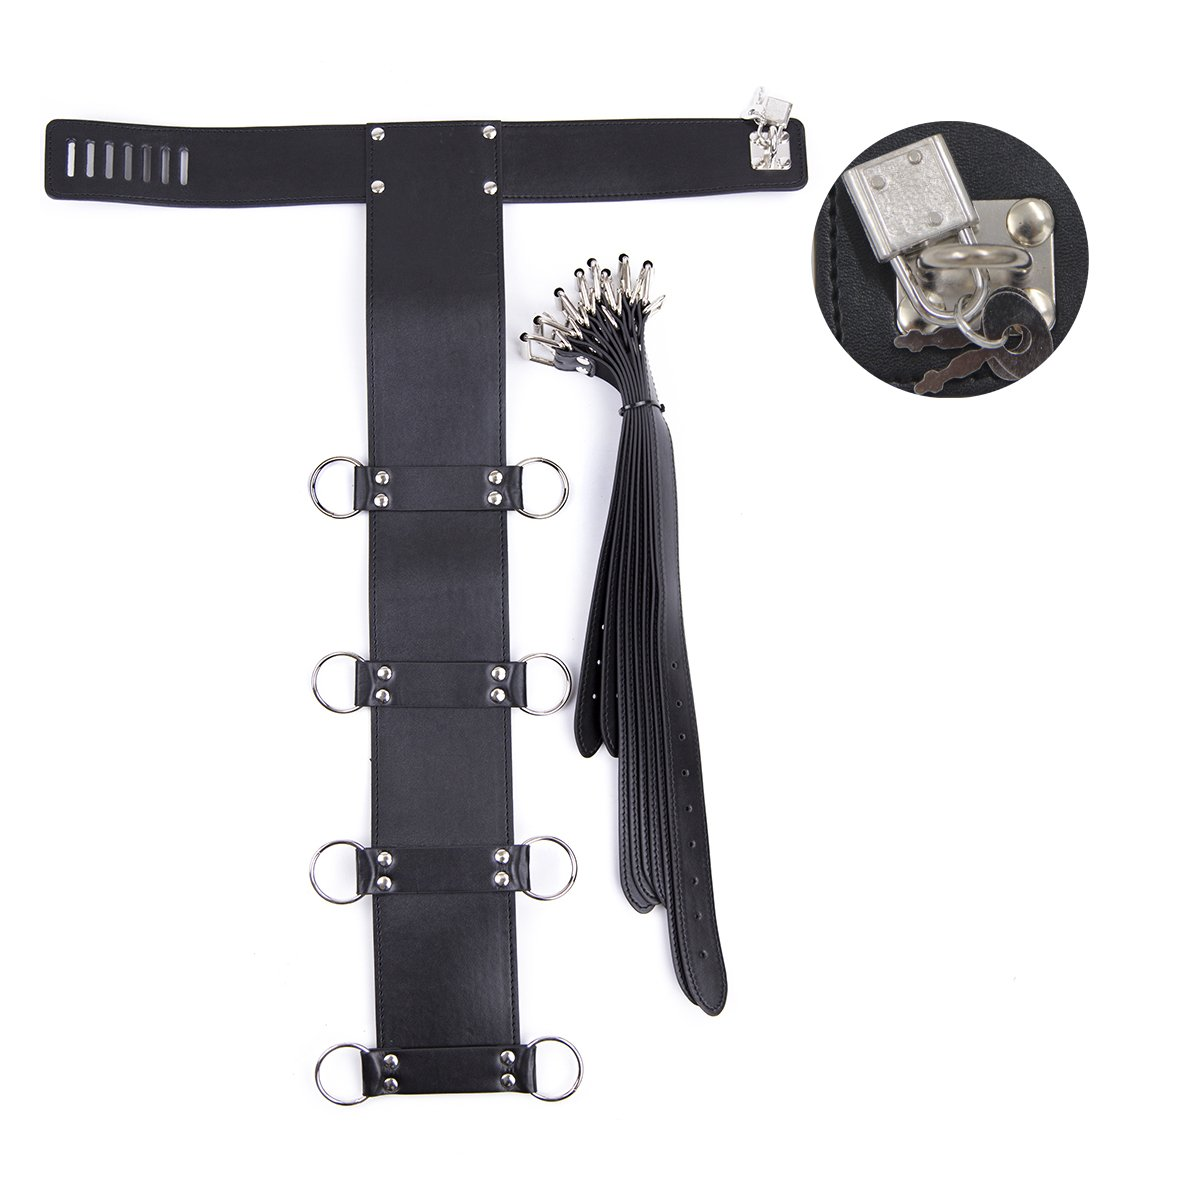 Lononvie Sex PU Bed Straps Bondage Restraints System,Neck Collar with Adjustable 4pcs Handcuffs Back,Couples BDSM Game Kit,Black by Lononvie (Image #2)